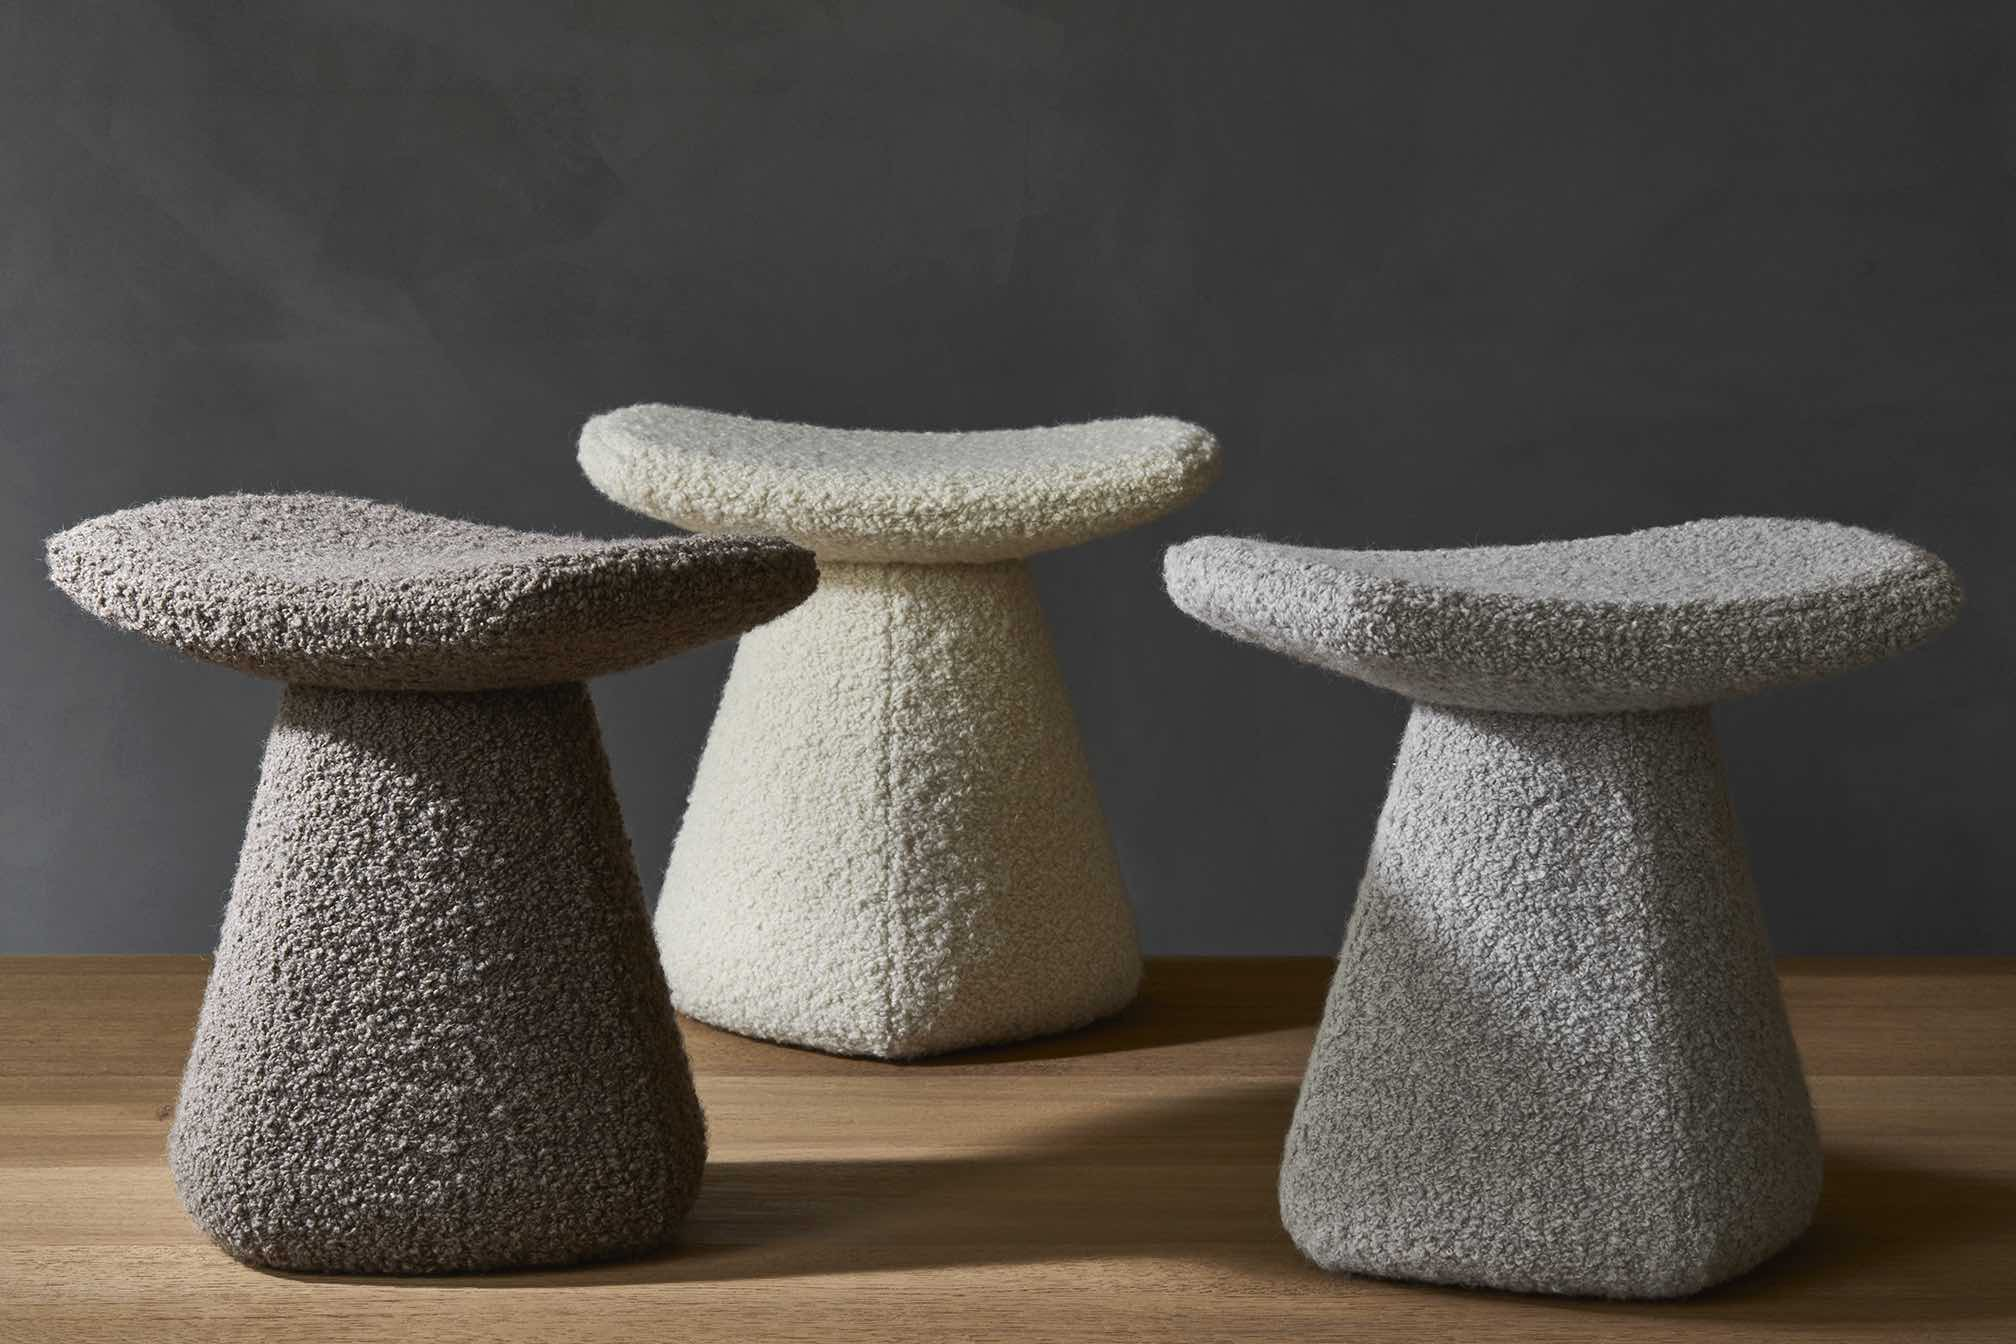 DAM-STOOL-UPHOLSTERED-WOOL-DESIGN-CHRISTOPHE-DELCOURT-COLLECTION-PARTICULIERE